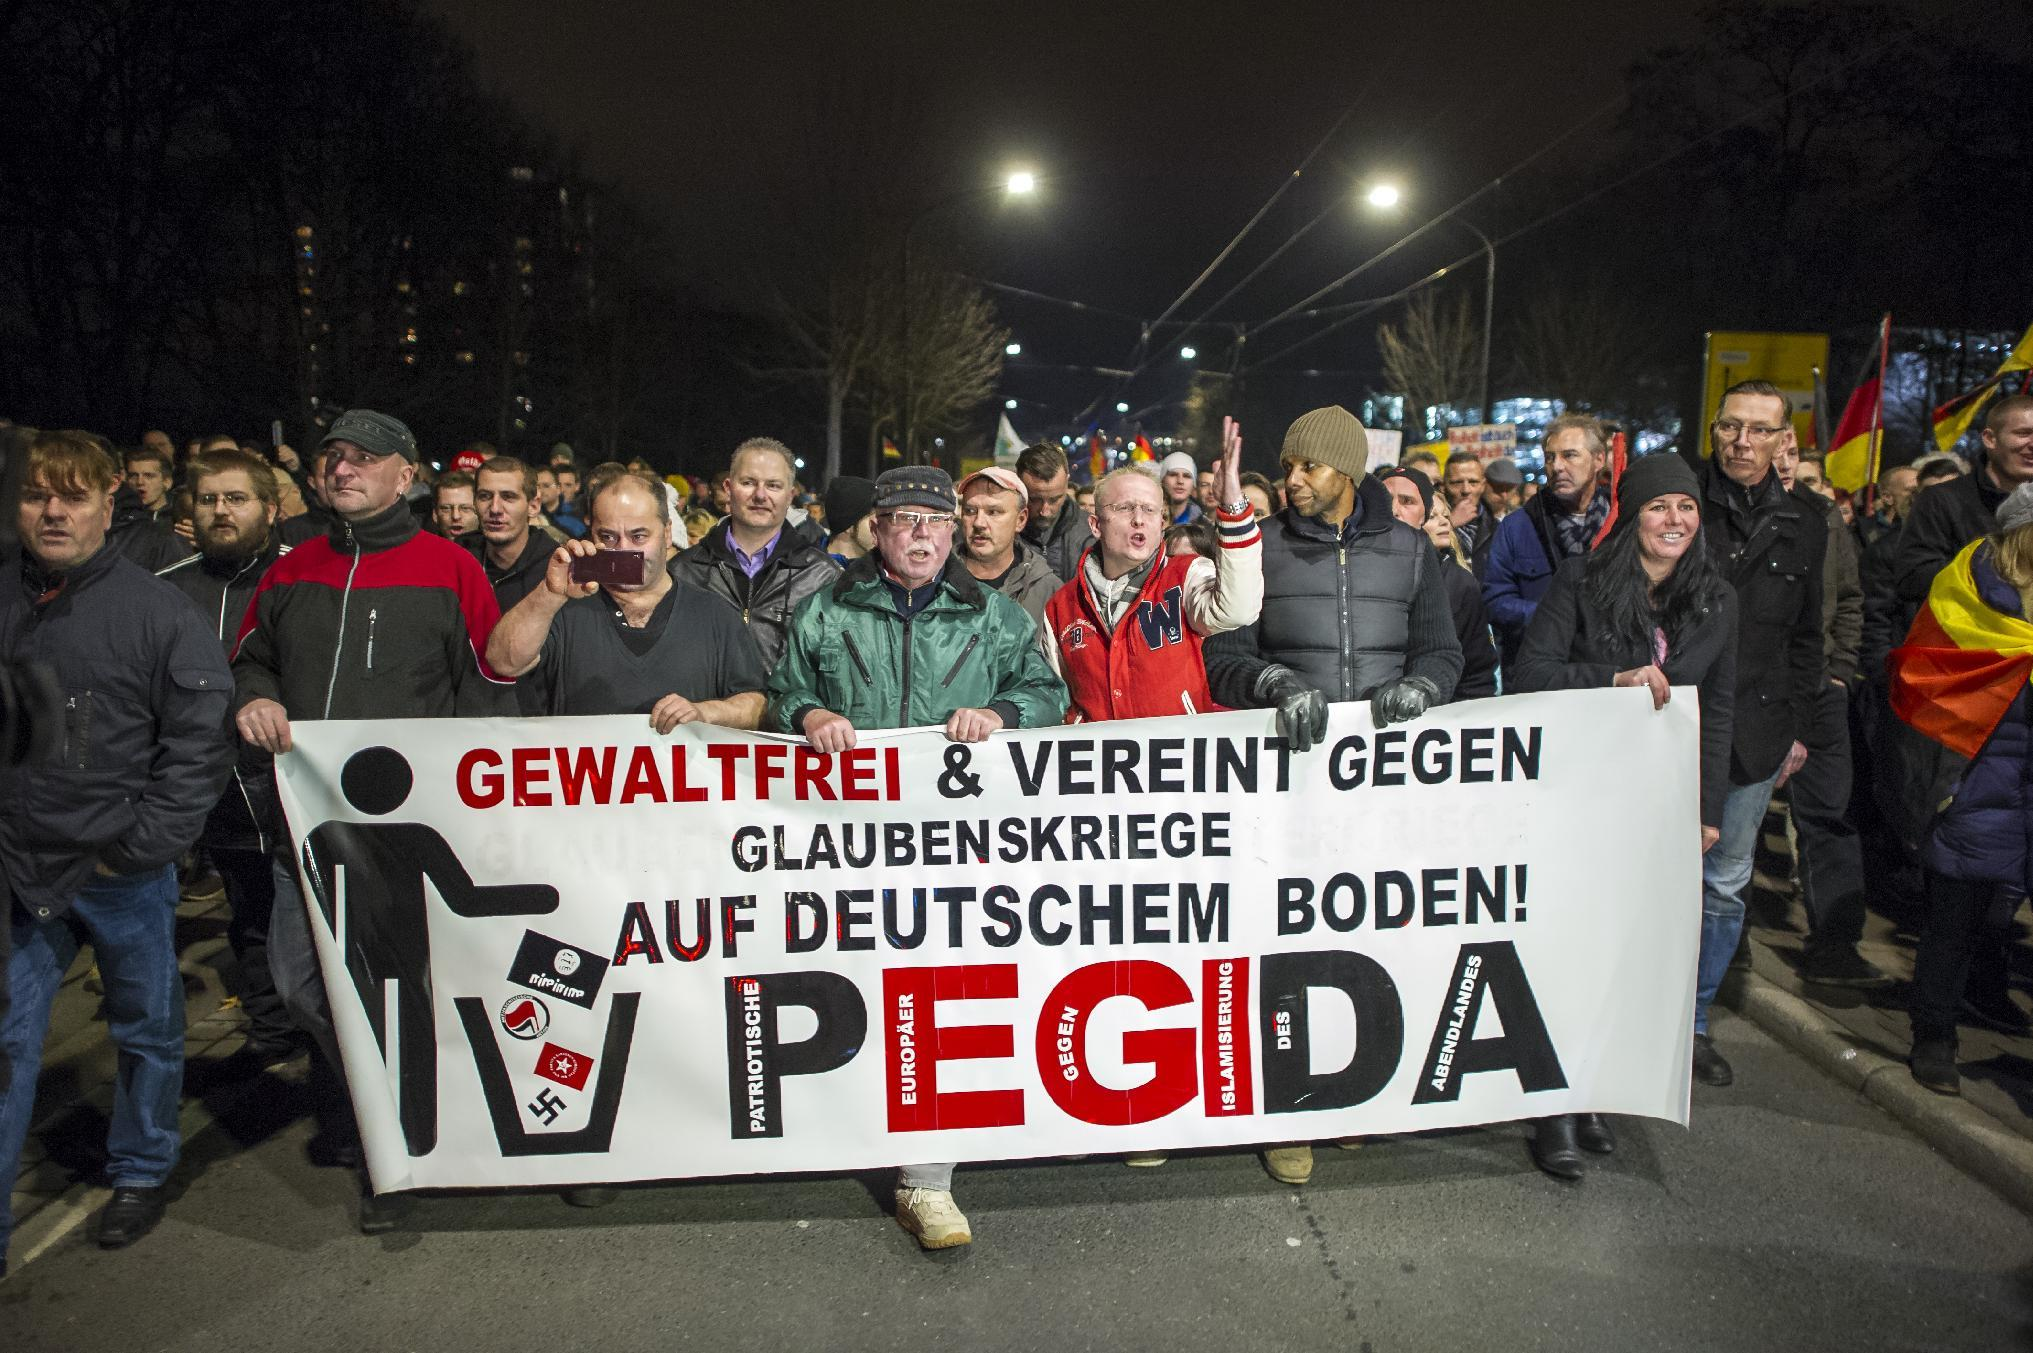 15,000 join anti-Islam protest in eastern Germany